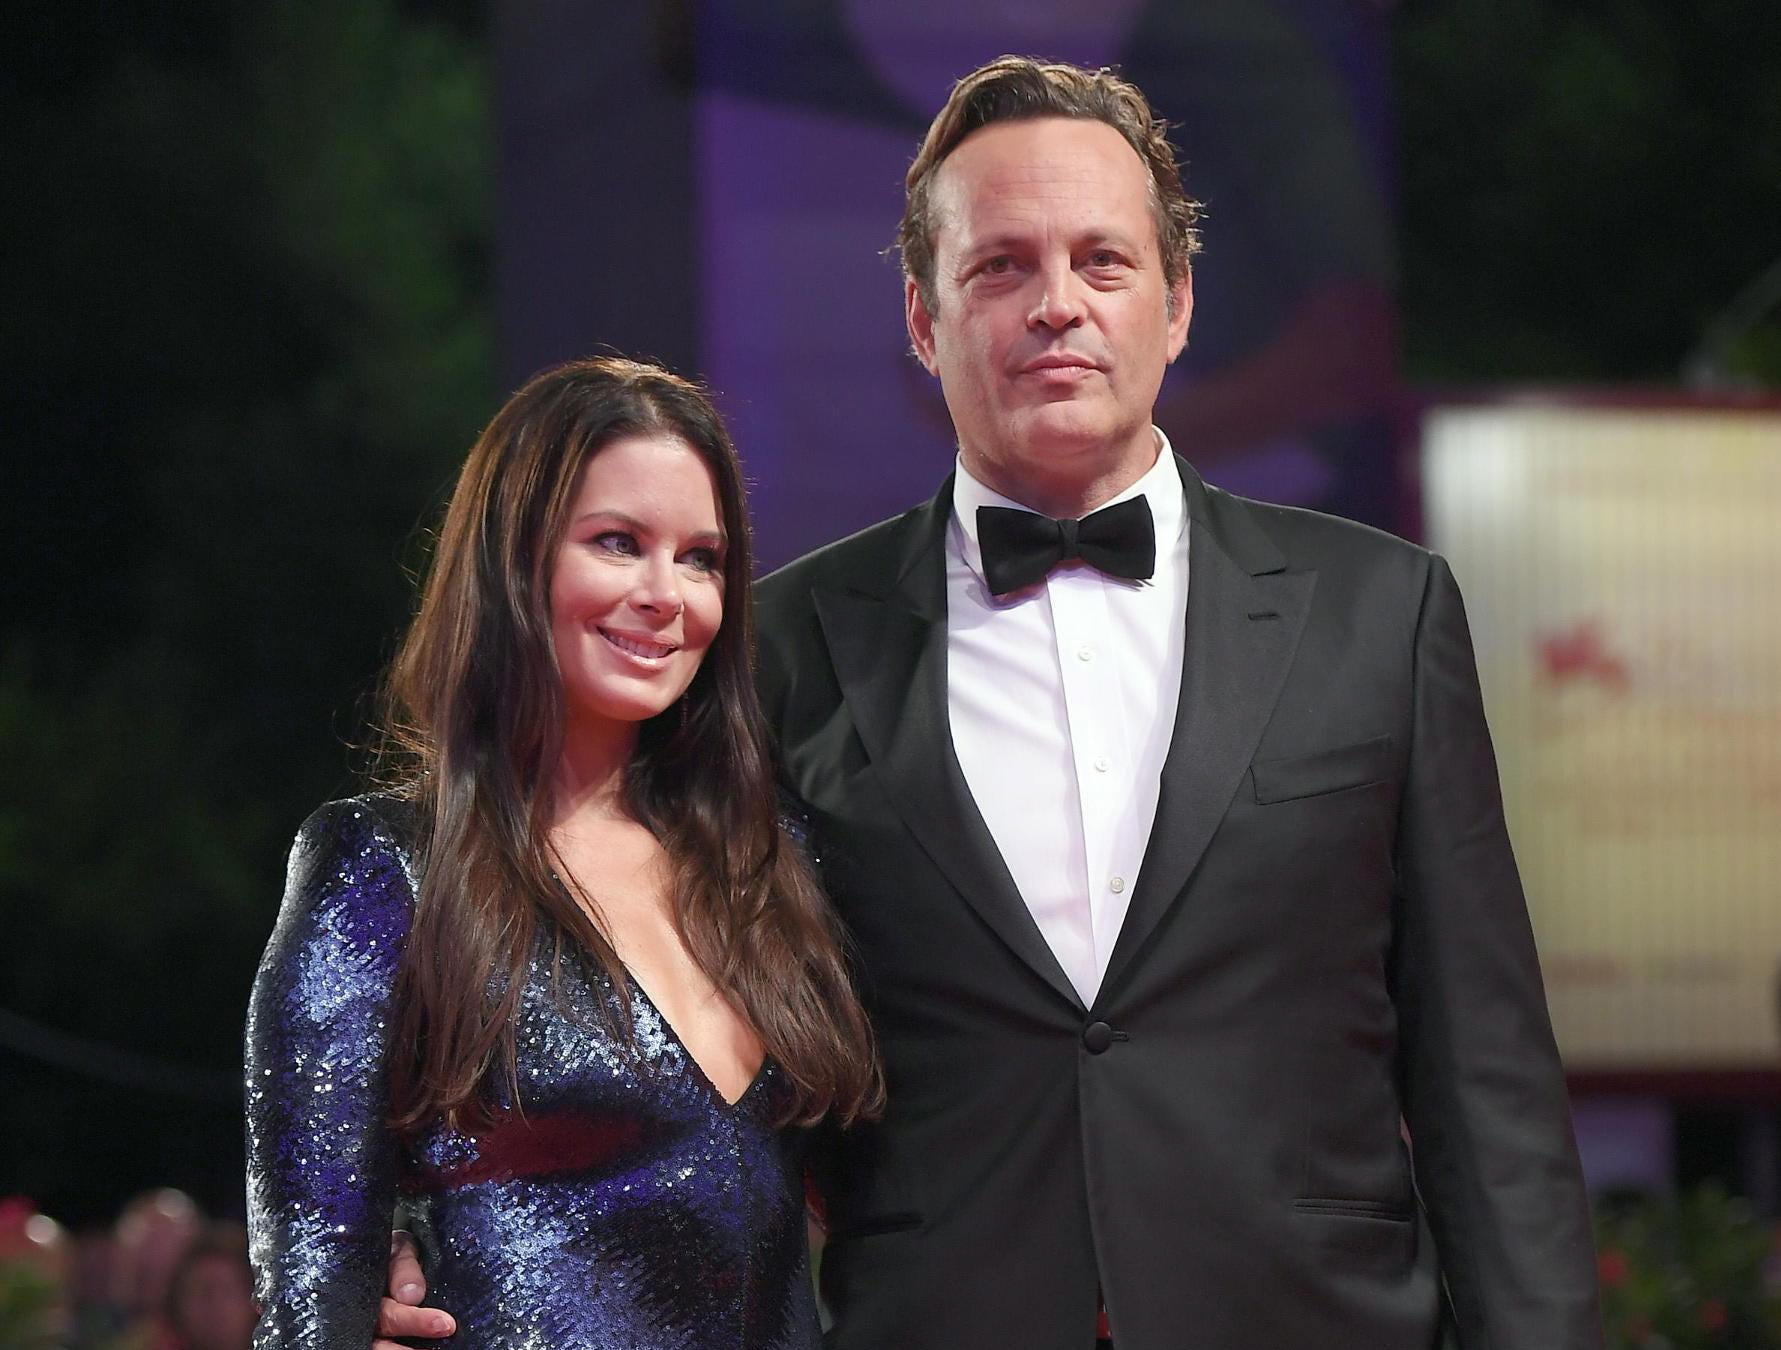 epa06995314 US actor Vince Vaughn and Kyla Weber arrive for the premiere of 'Dragged Across Concrete' during the 75th annual Venice International Film Festival, in Venice, Italy, 03 September 2018. The movie is presented in out competition at the festival running from 29 August to 08 September 2018.  EPA-EFE/CLAUDIO ONORATI